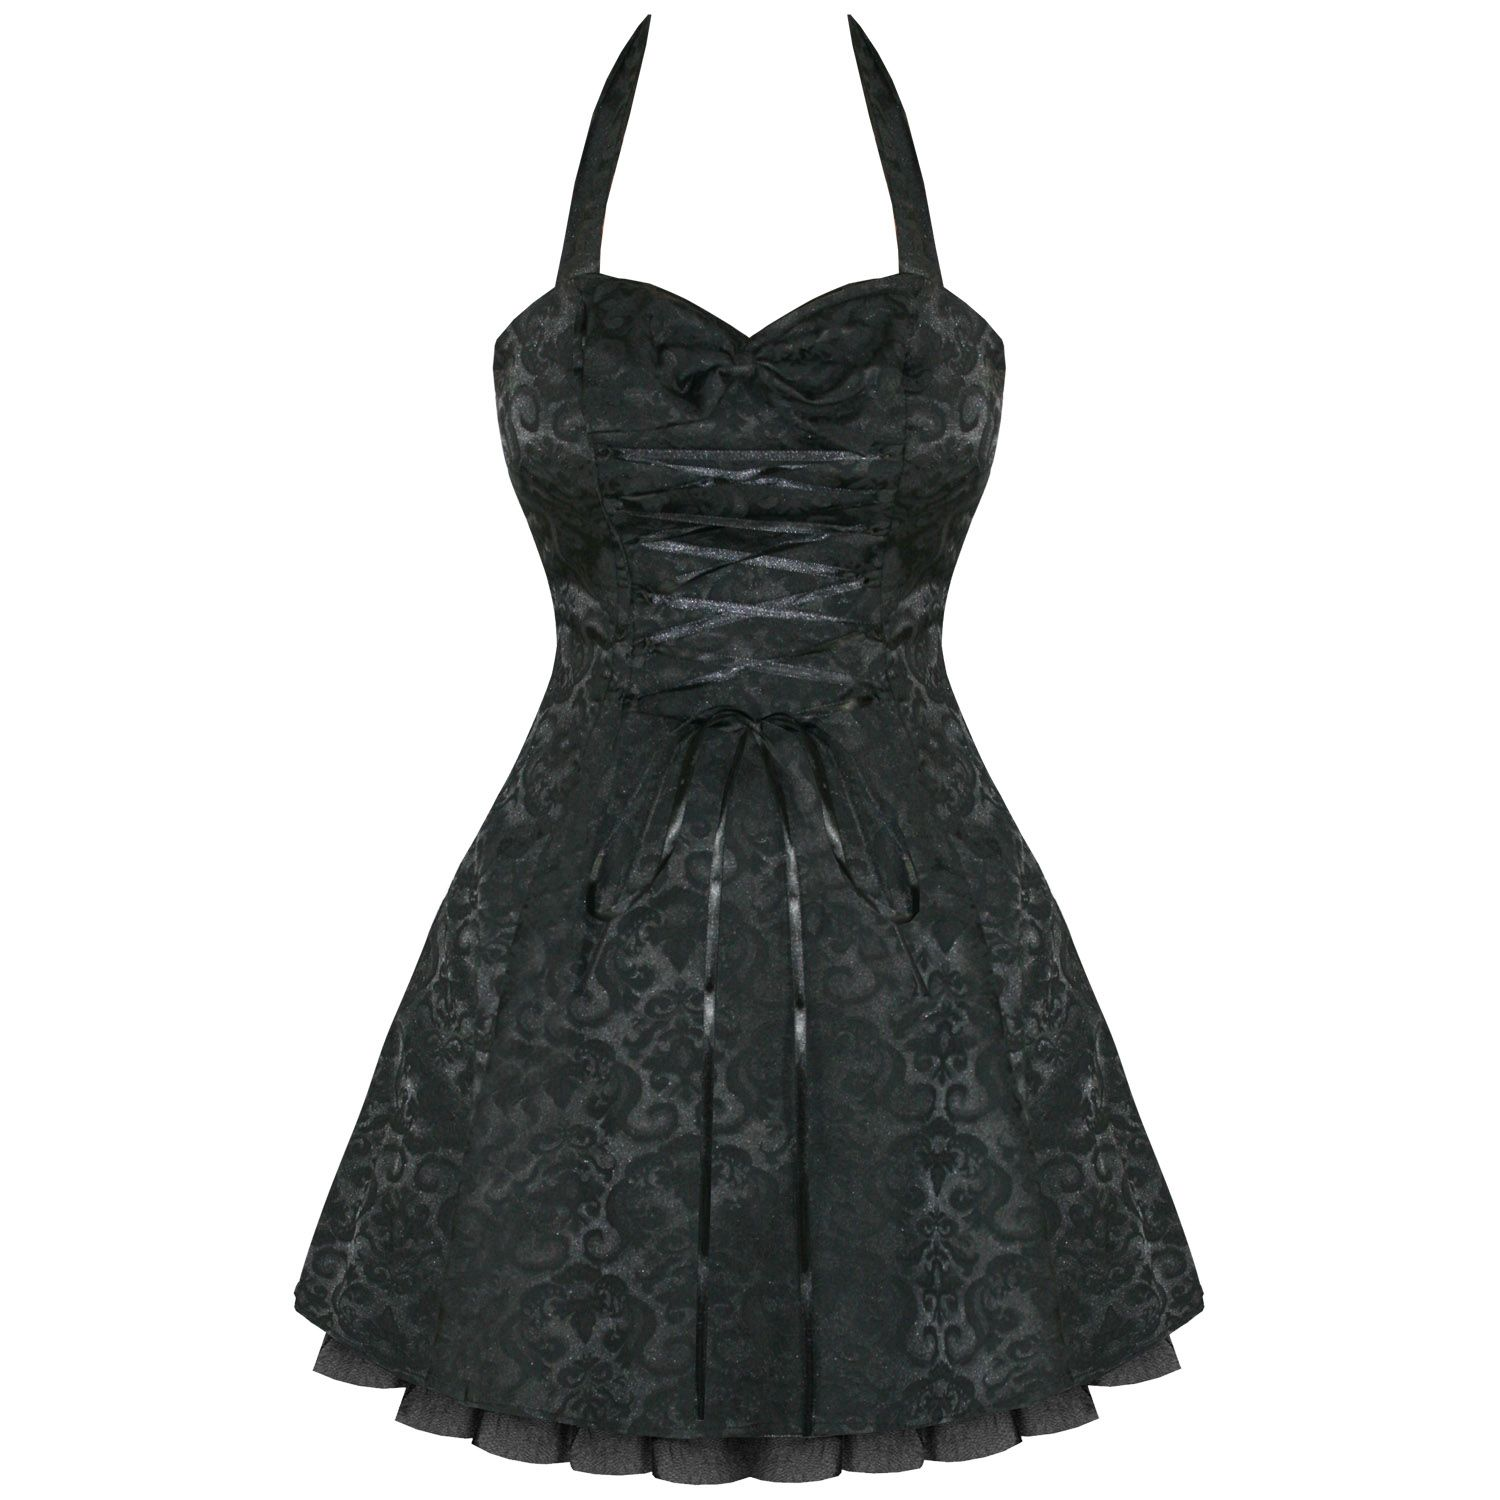 Black damask gothic steampunk emo party prom dress formal dresses